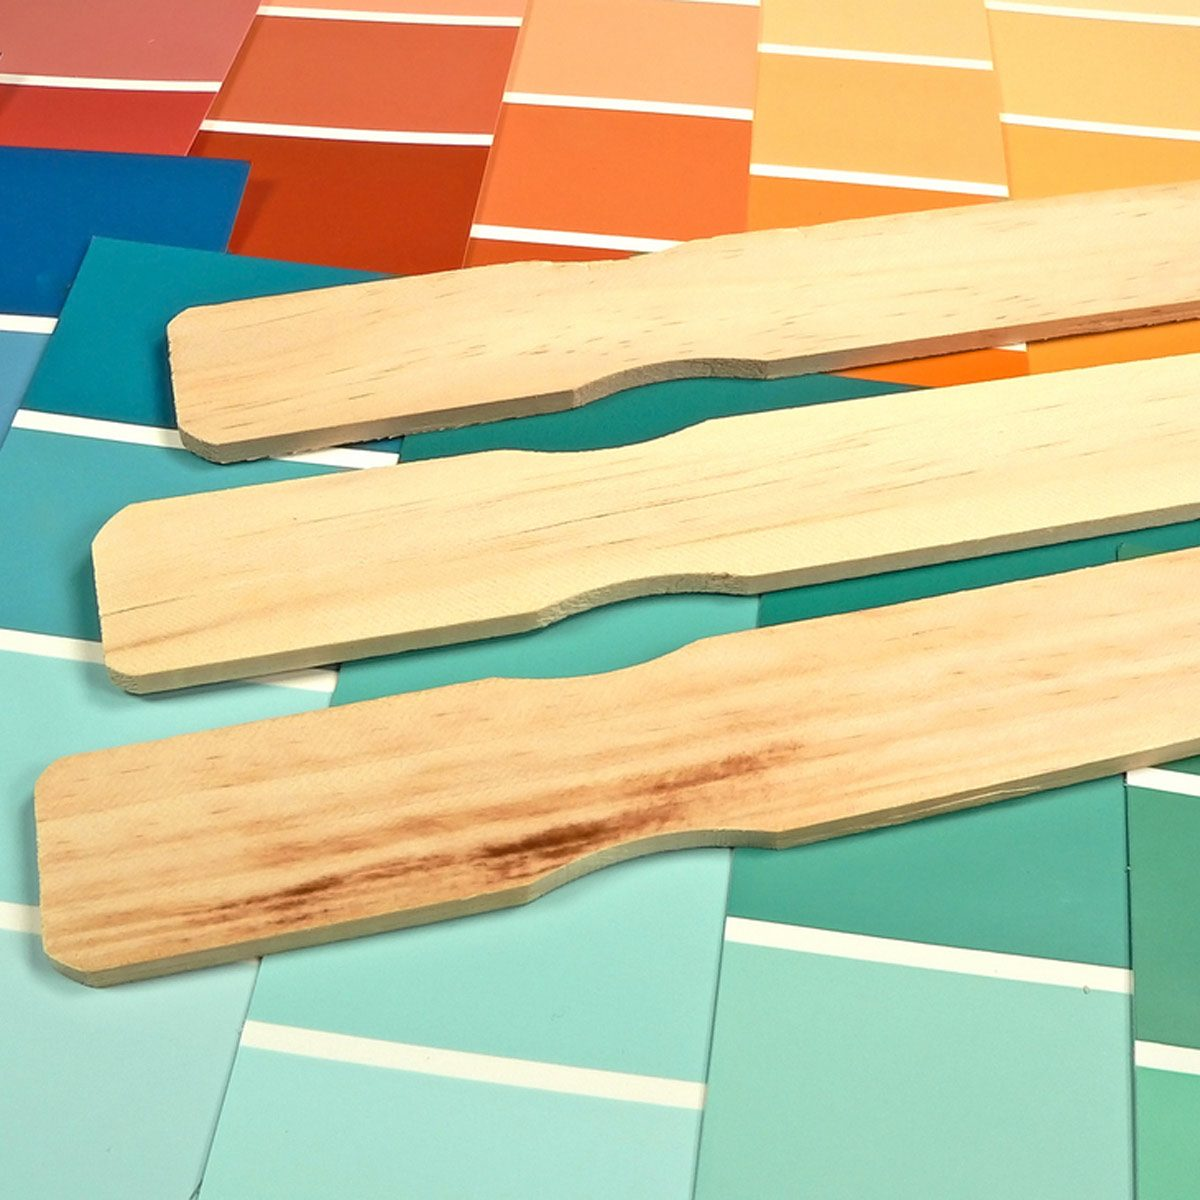 shutterstock_2477262 paint stir sticks samples